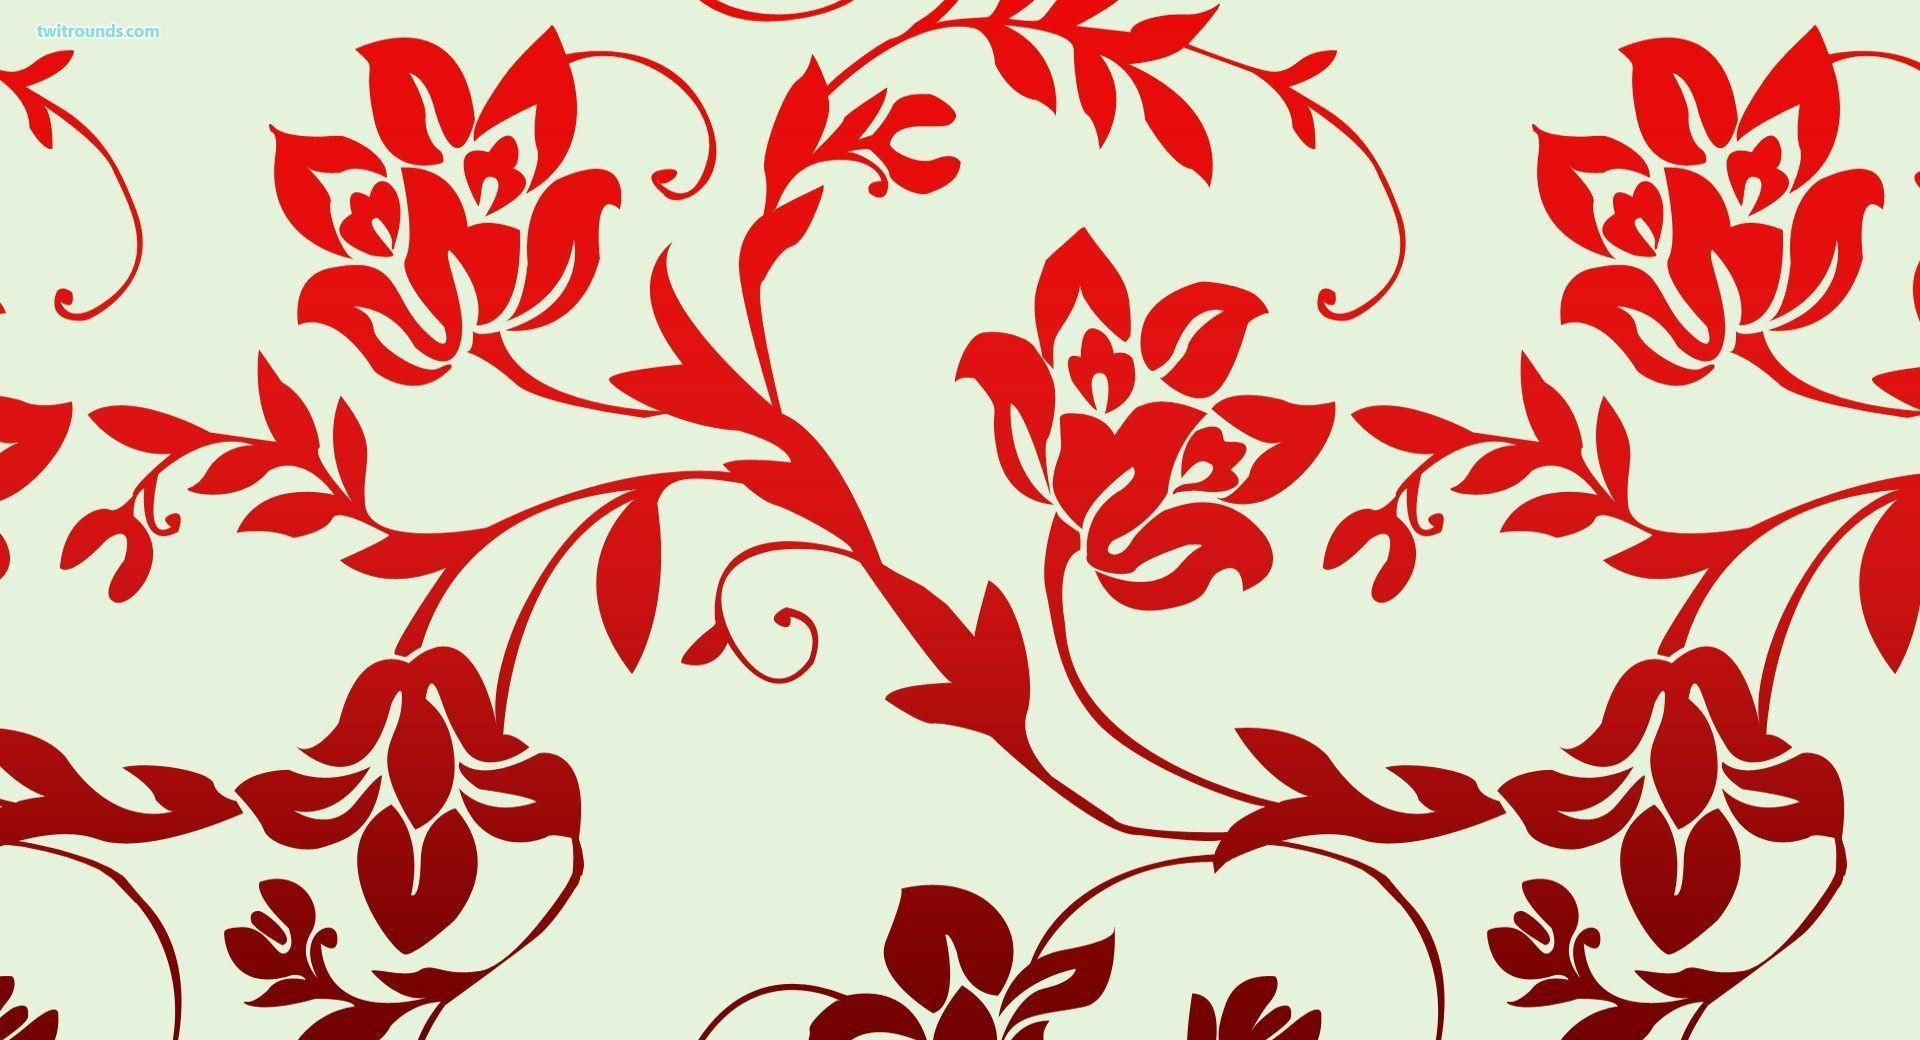 Red Flower Backgrounds - Wallpaper Cave